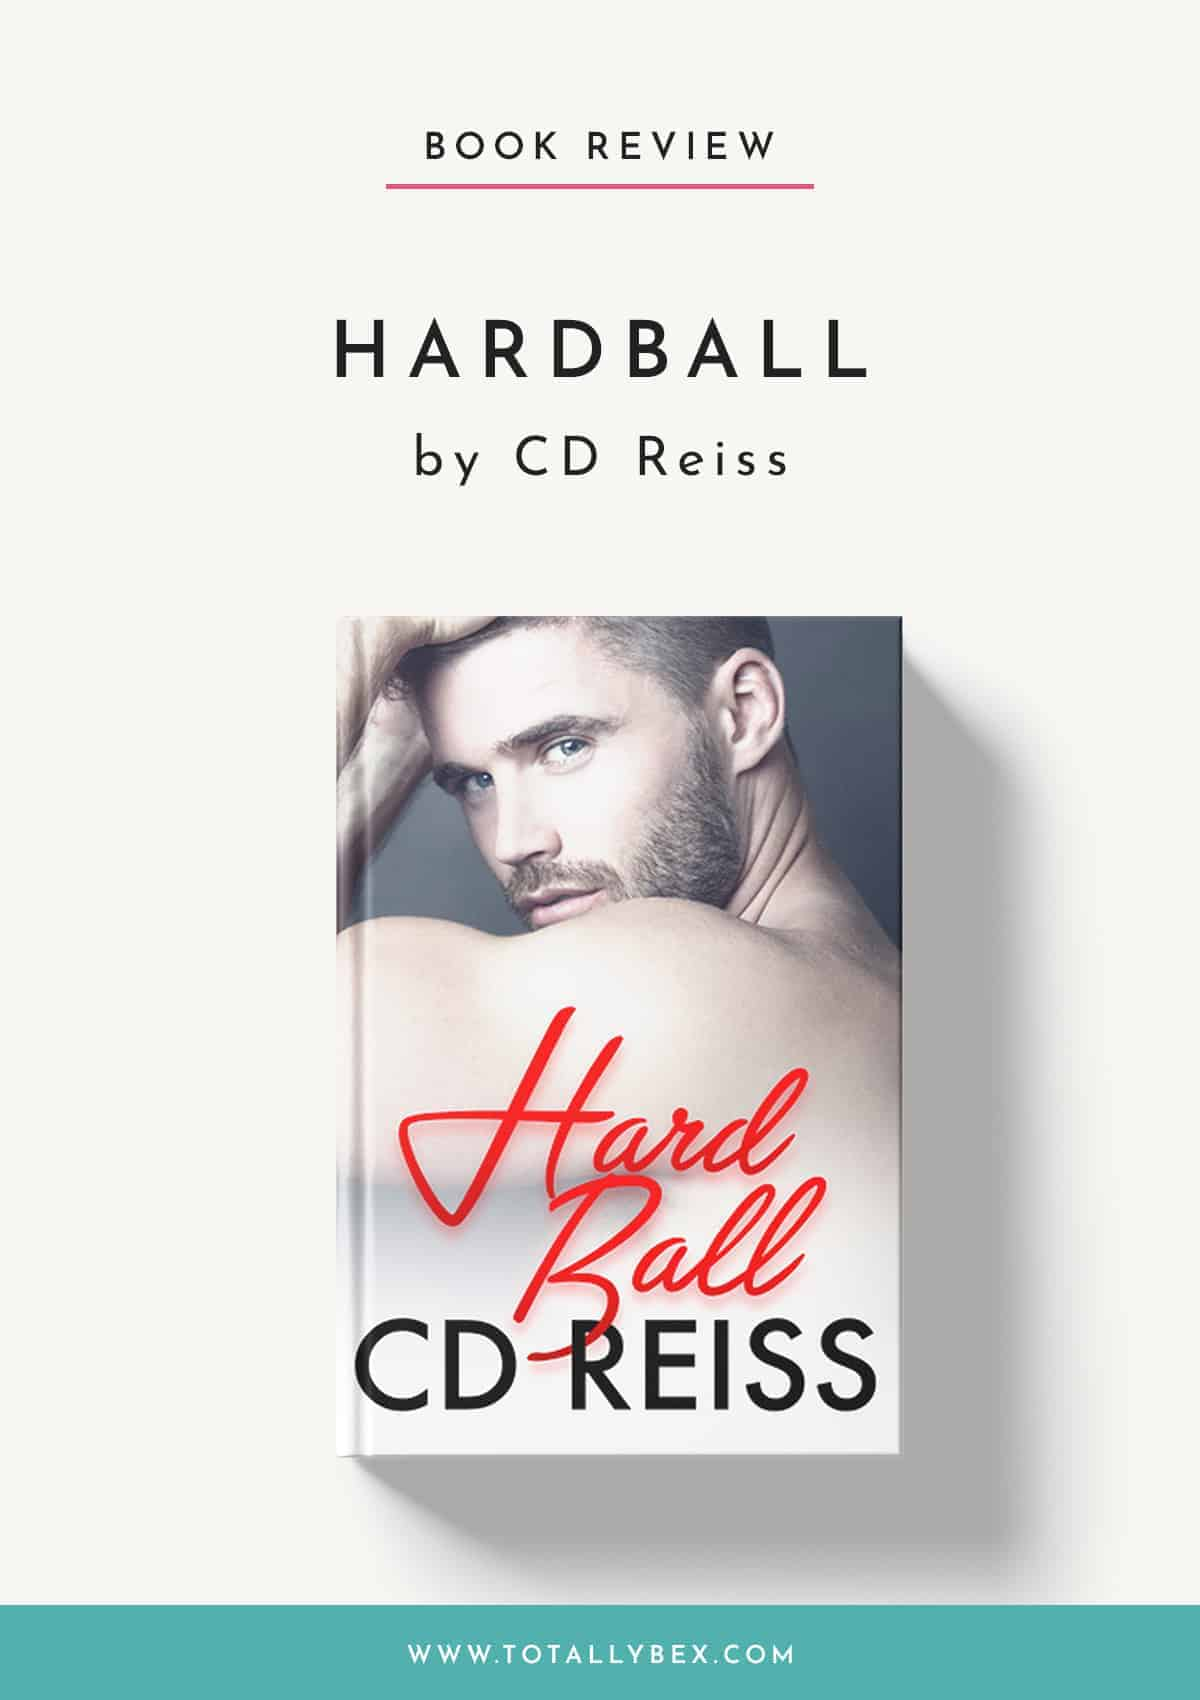 HardBall by CD Reiss-Book Review